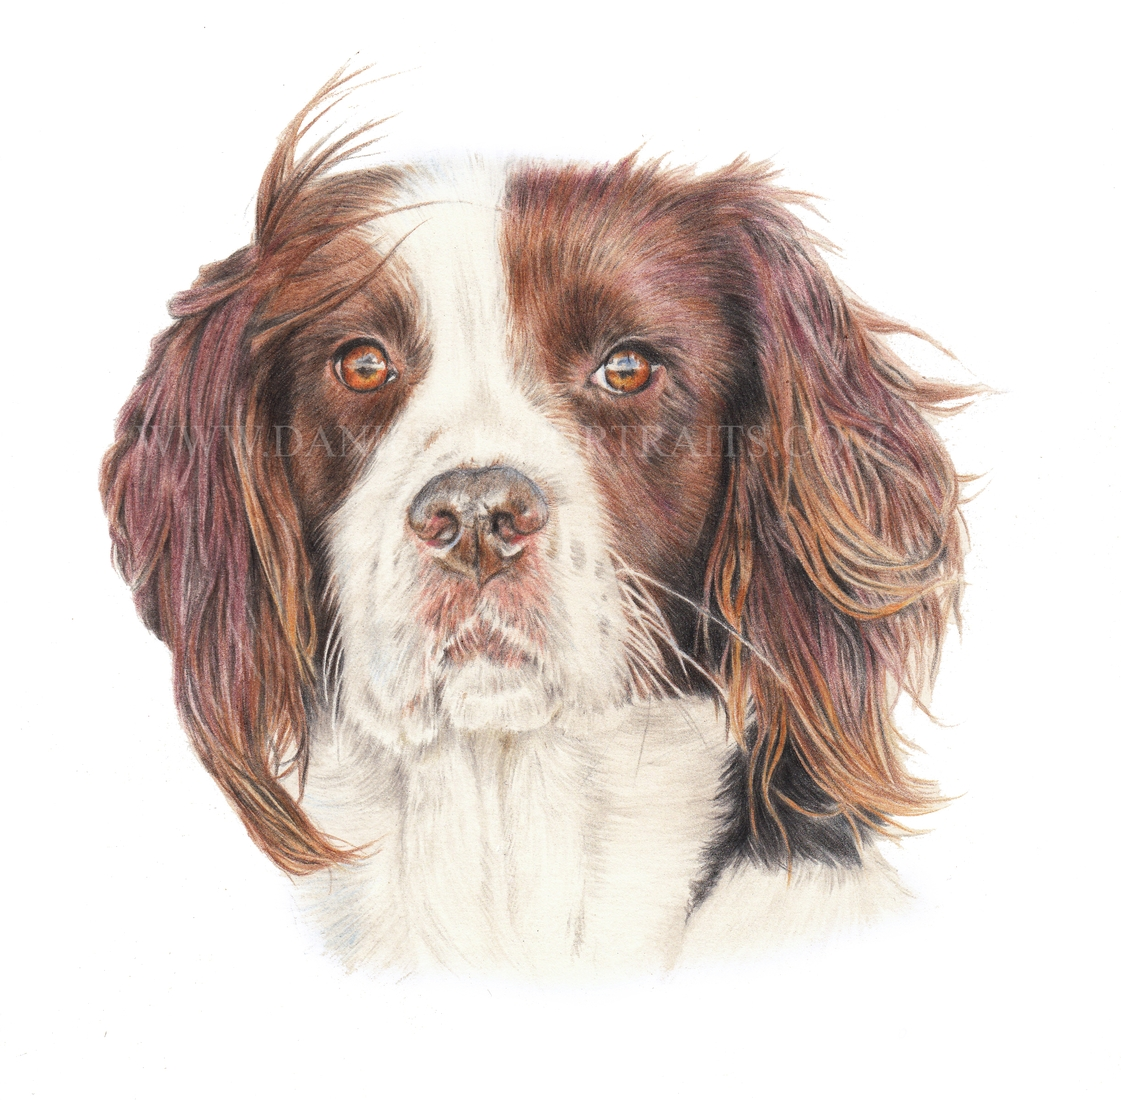 02-Lillie-Danielle-Fisher-Realistic-Pet-and-Wildlife-Portraits-www-designstack-co